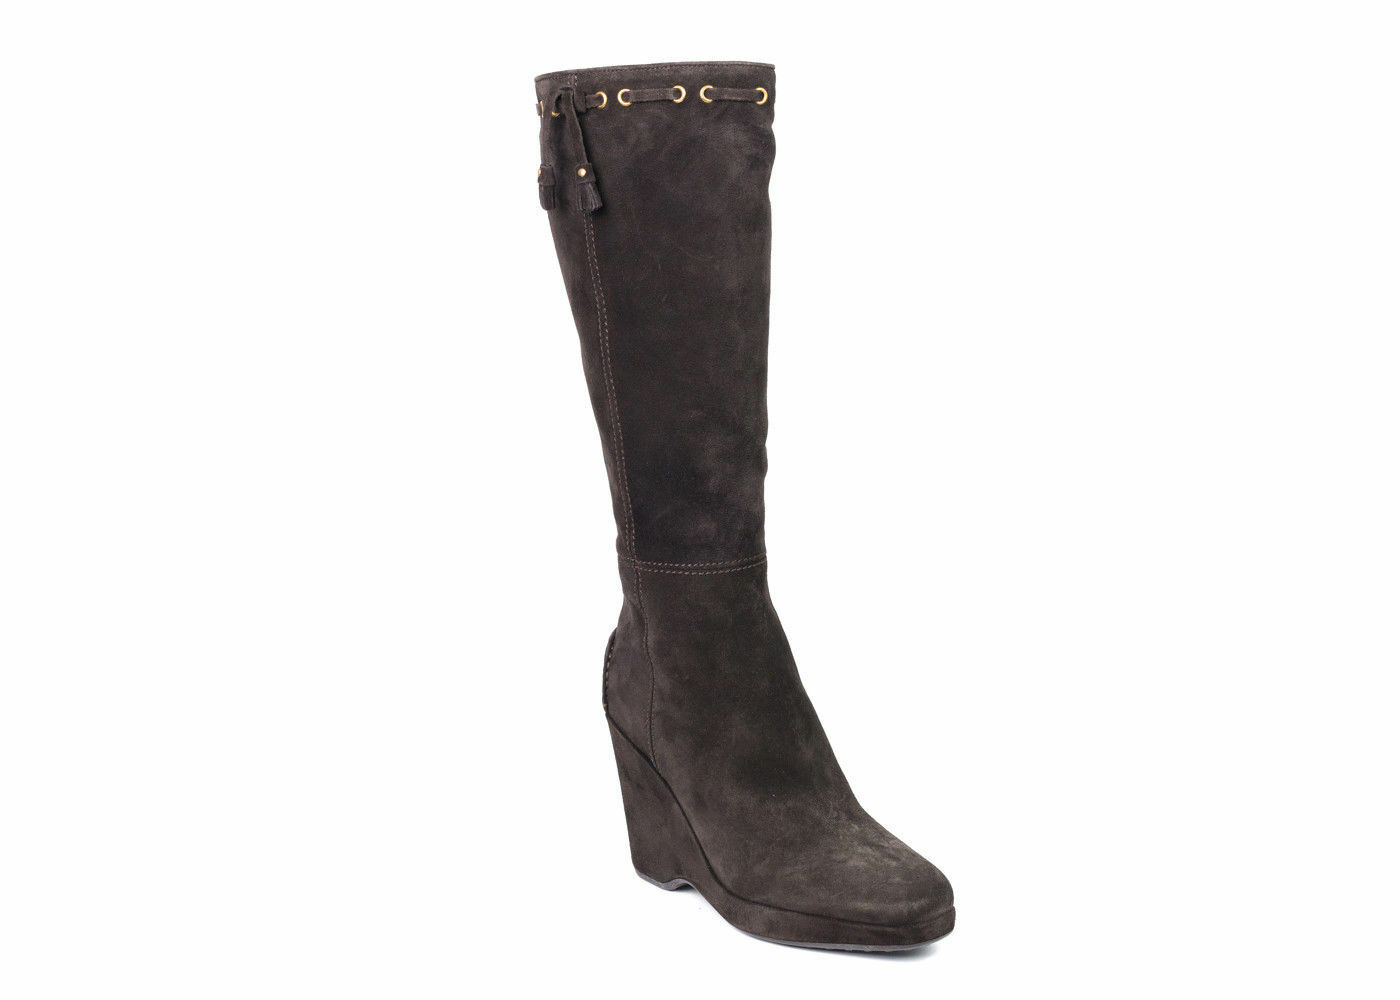 Car chaussures By Prada Chocolate marron Suede Knee-High Tassel bottes Taille 38 8